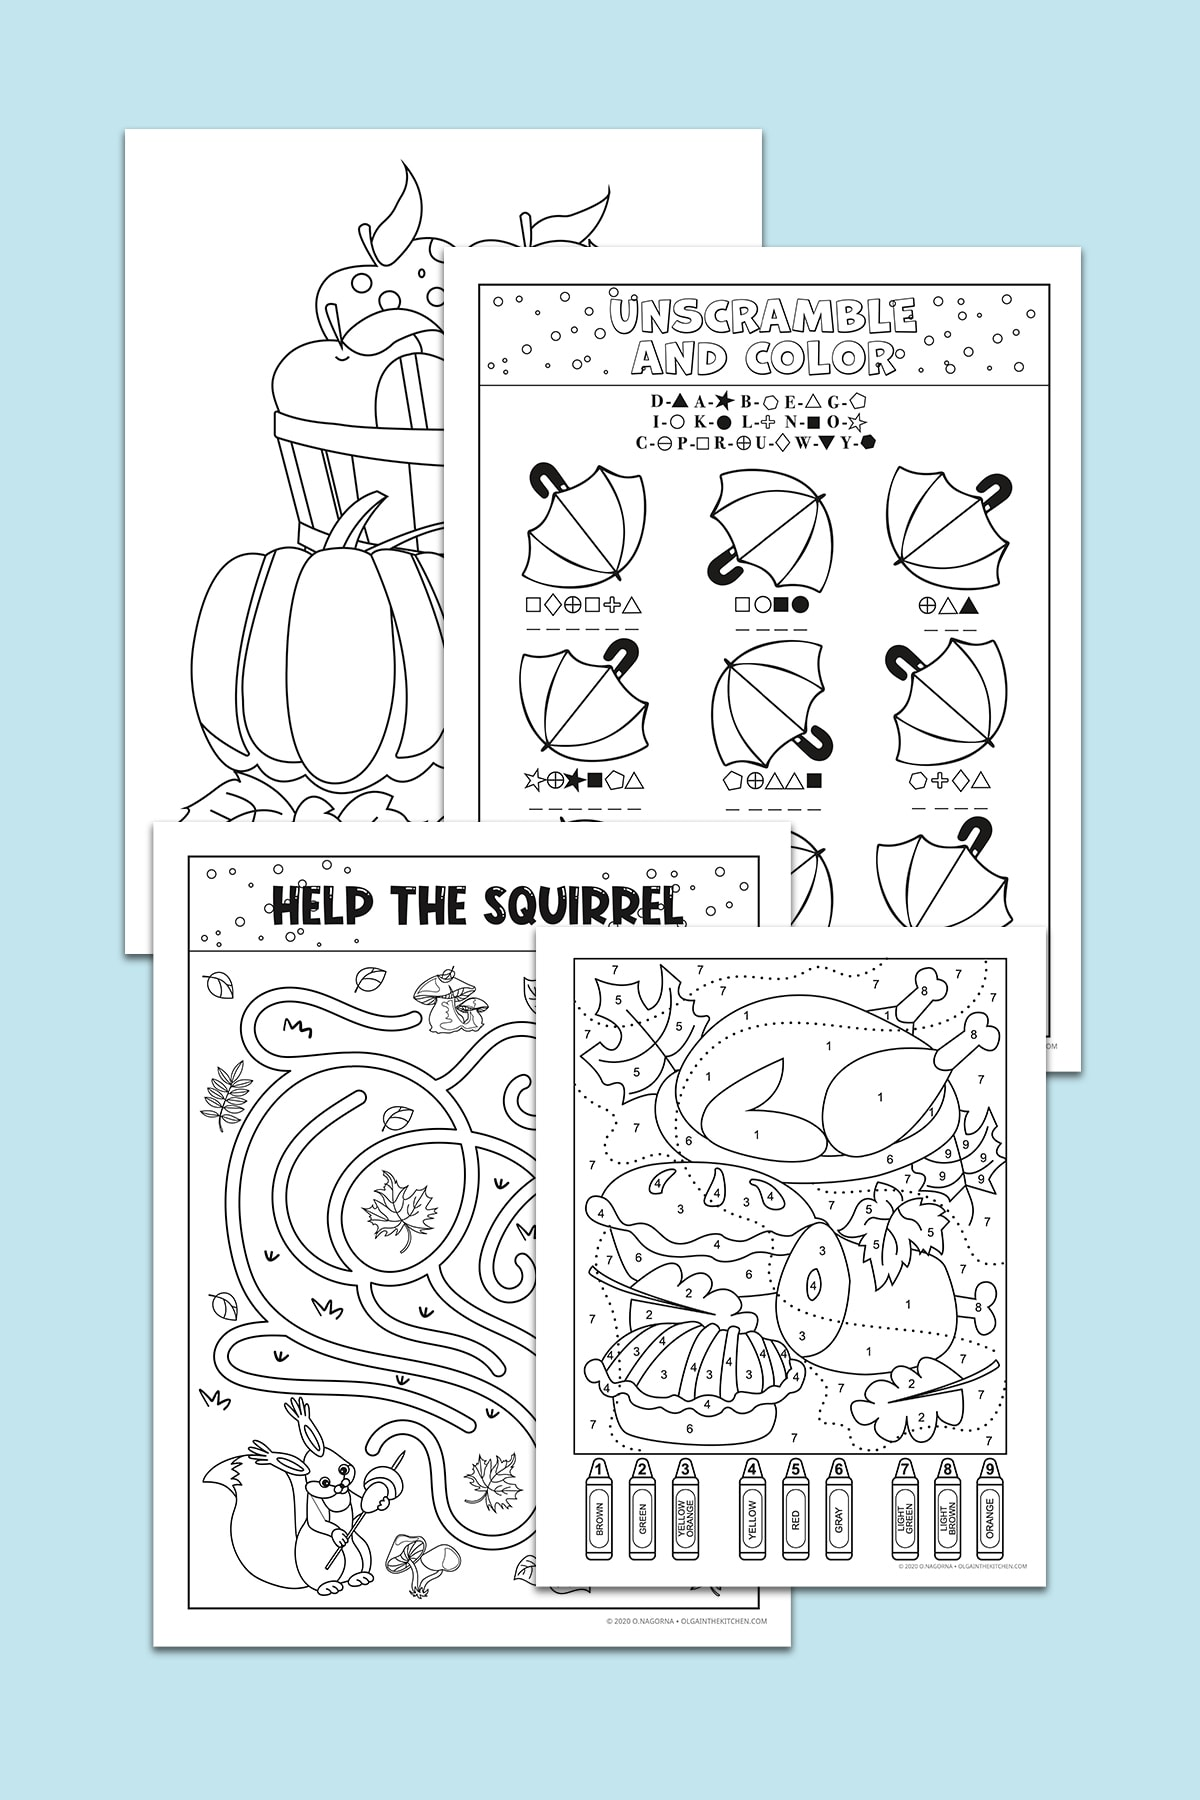 A collection of Free Autumn and Thanksgiving Activities is the perfect family activity to enjoy together around the holidays. Includes fun Thanksgiving and fall coloring pages, an unscramble sheet and maze. #thanksgiving #printables #freebies #olgainthekitchen #homeschool #worksheets #kids